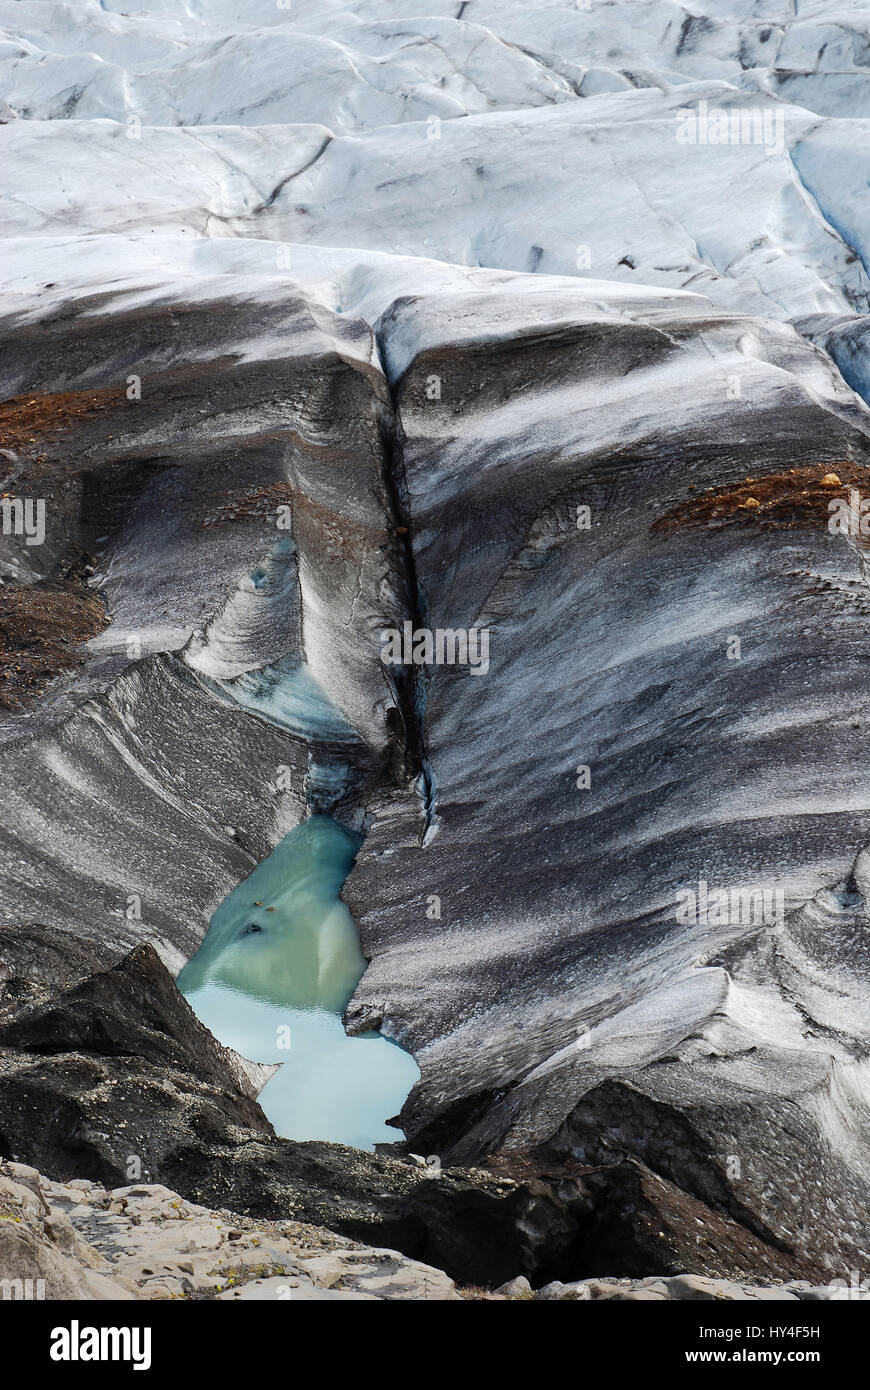 Above view on Iceland's glacier melting and turning into a dirty black crevasse of ice with a turquoise lake - Stock Image